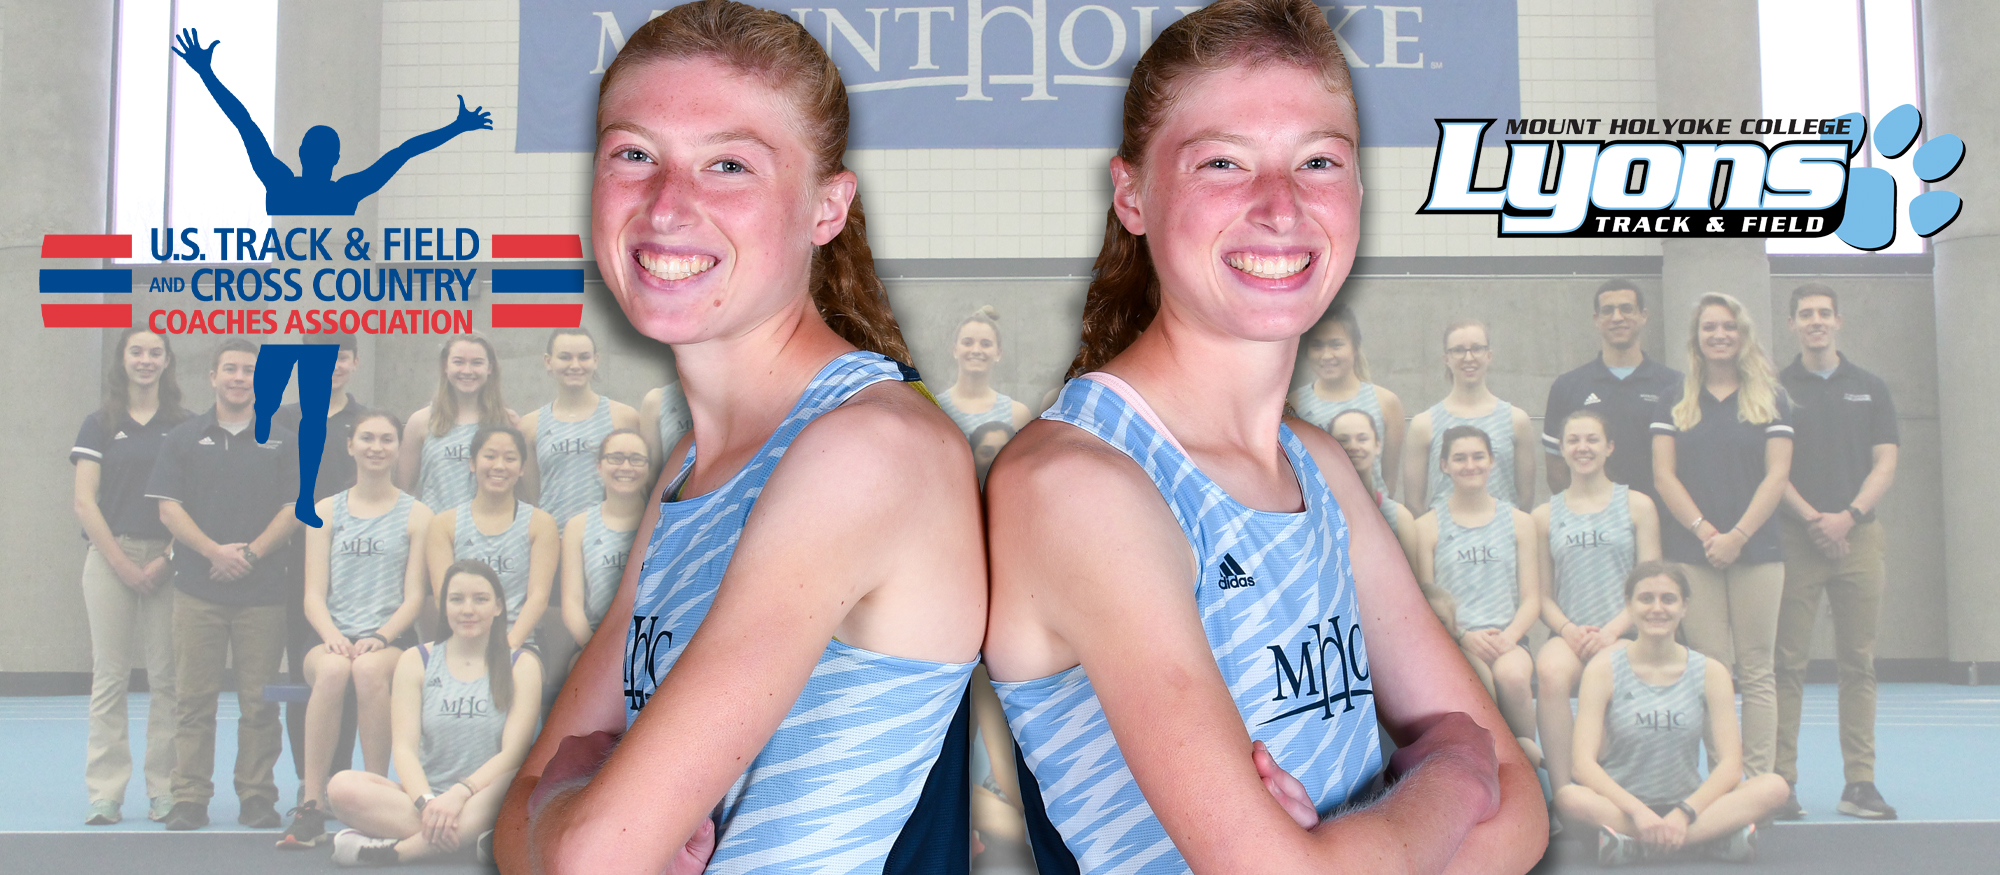 Track and Field Earns USTFCCCA Team Academic Honors; Rieders' Garner Individual Accolades